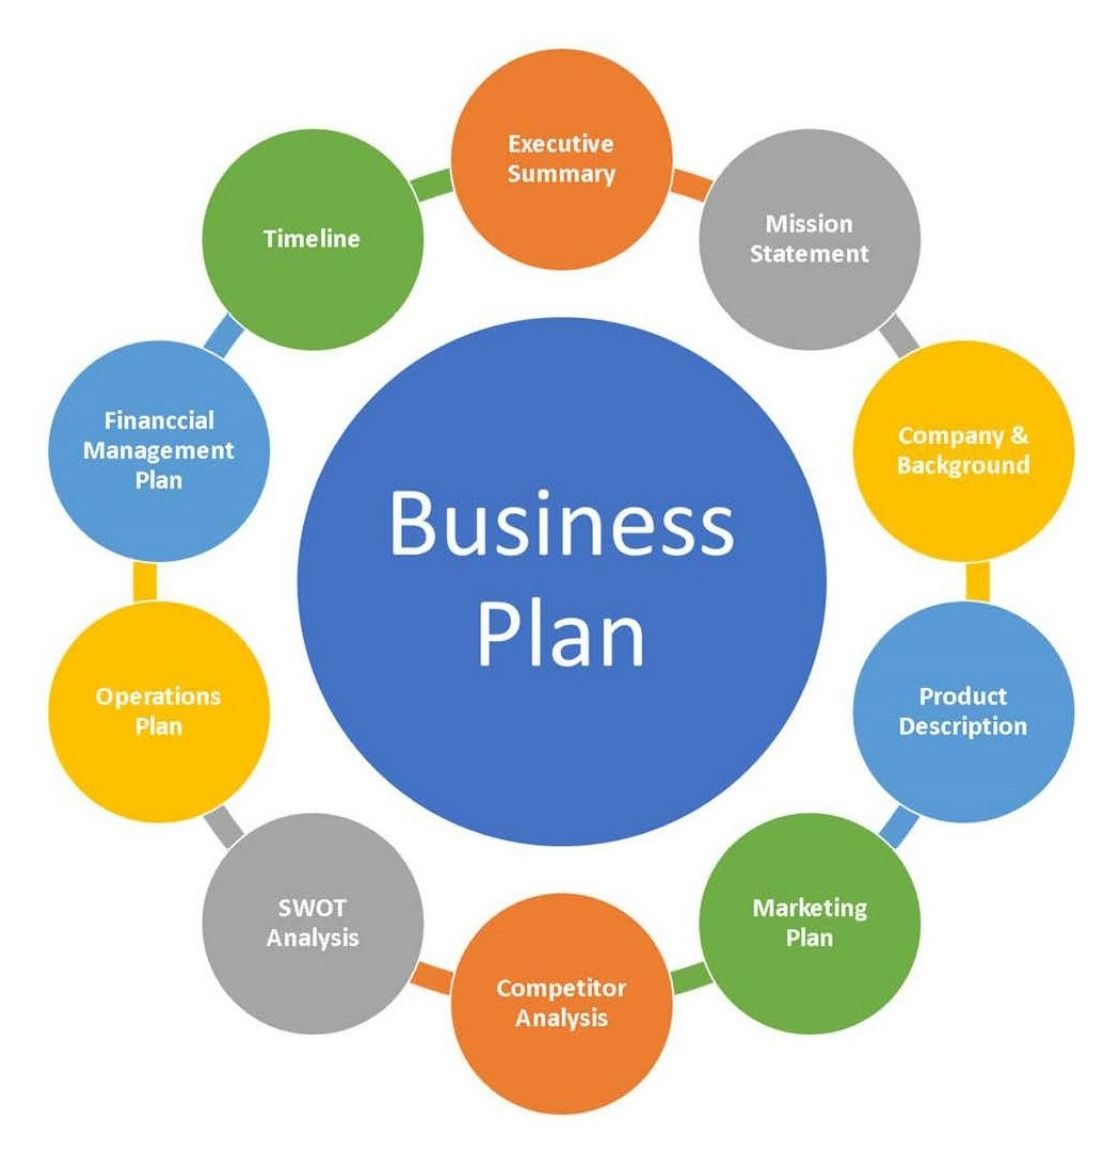 Custom business plan writer services online how to reference a film in apa format